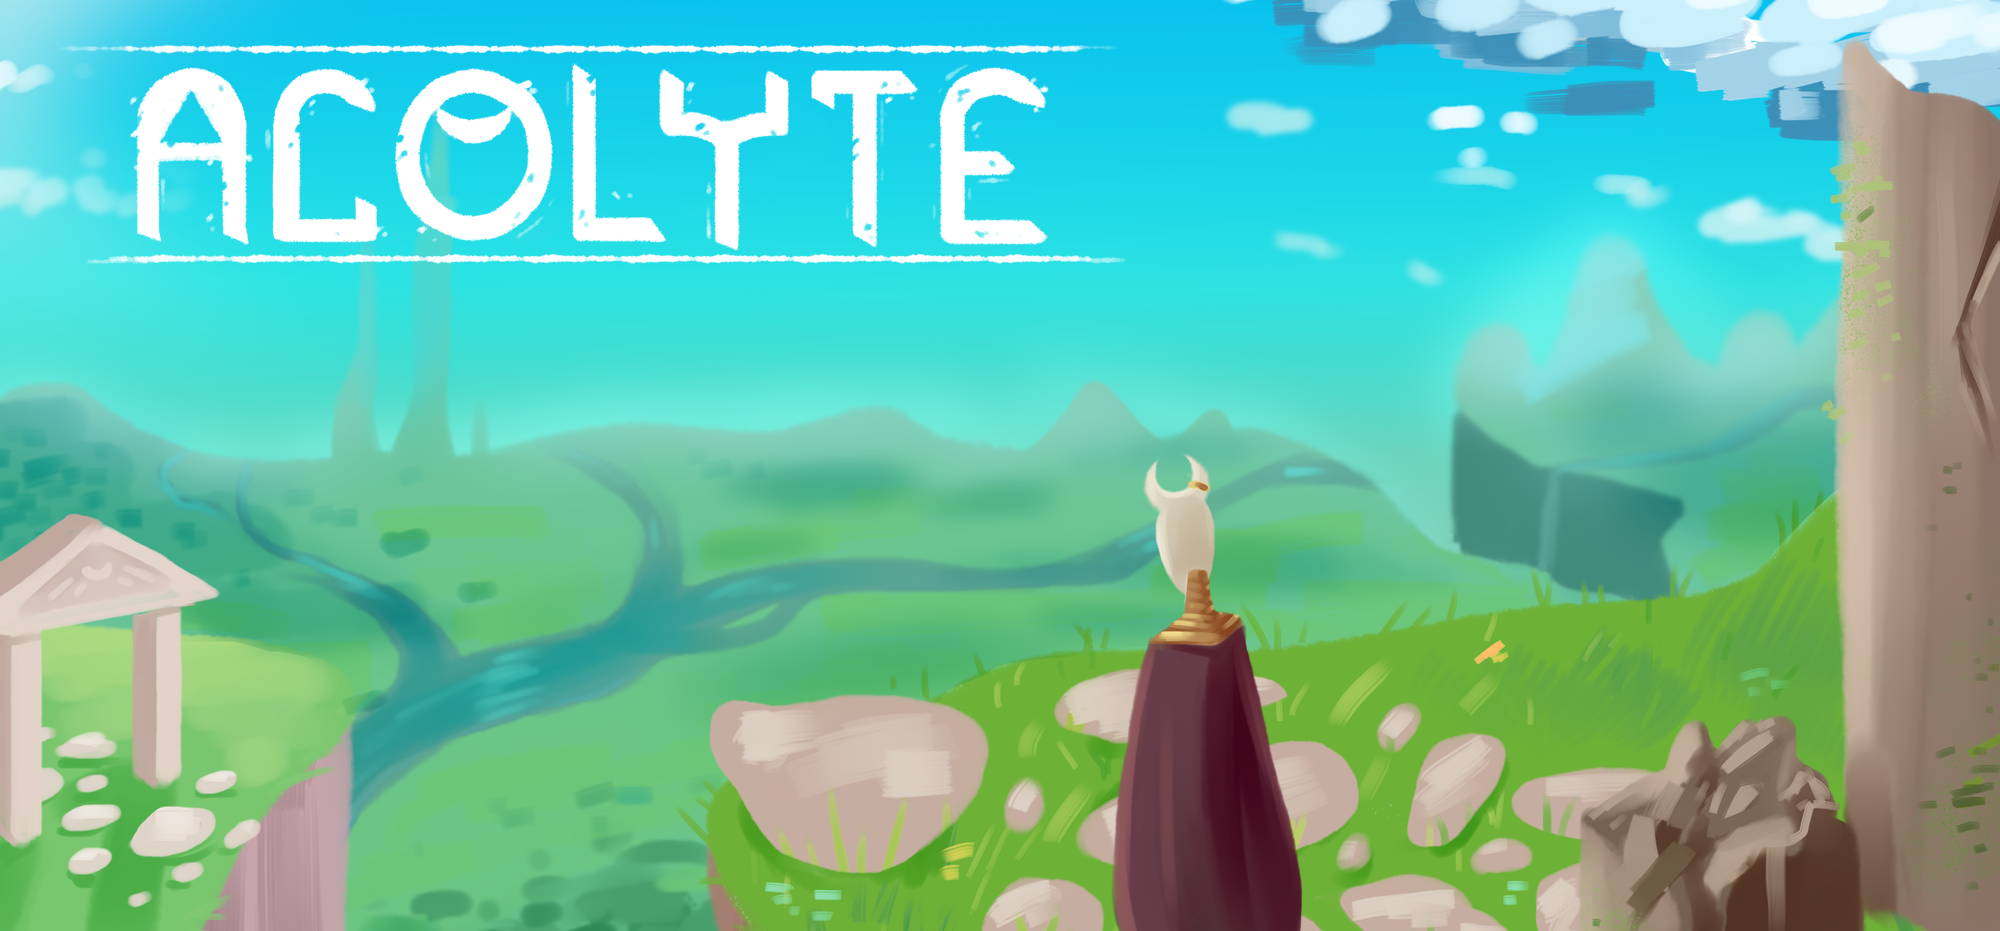 Project: Acolyte